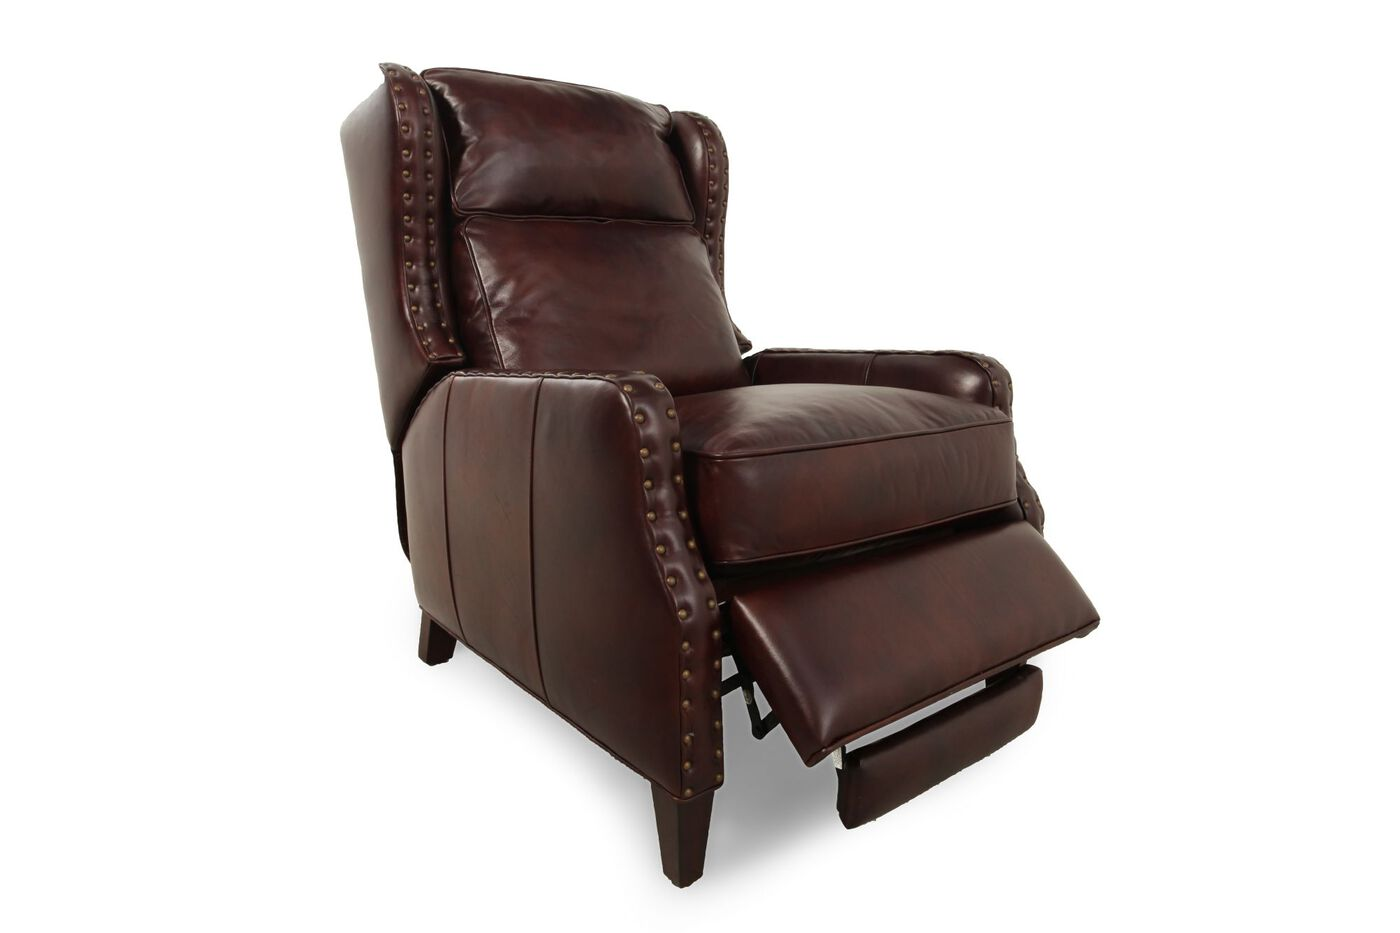 Henredon Leather Recliner Mathis Brothers Furniture